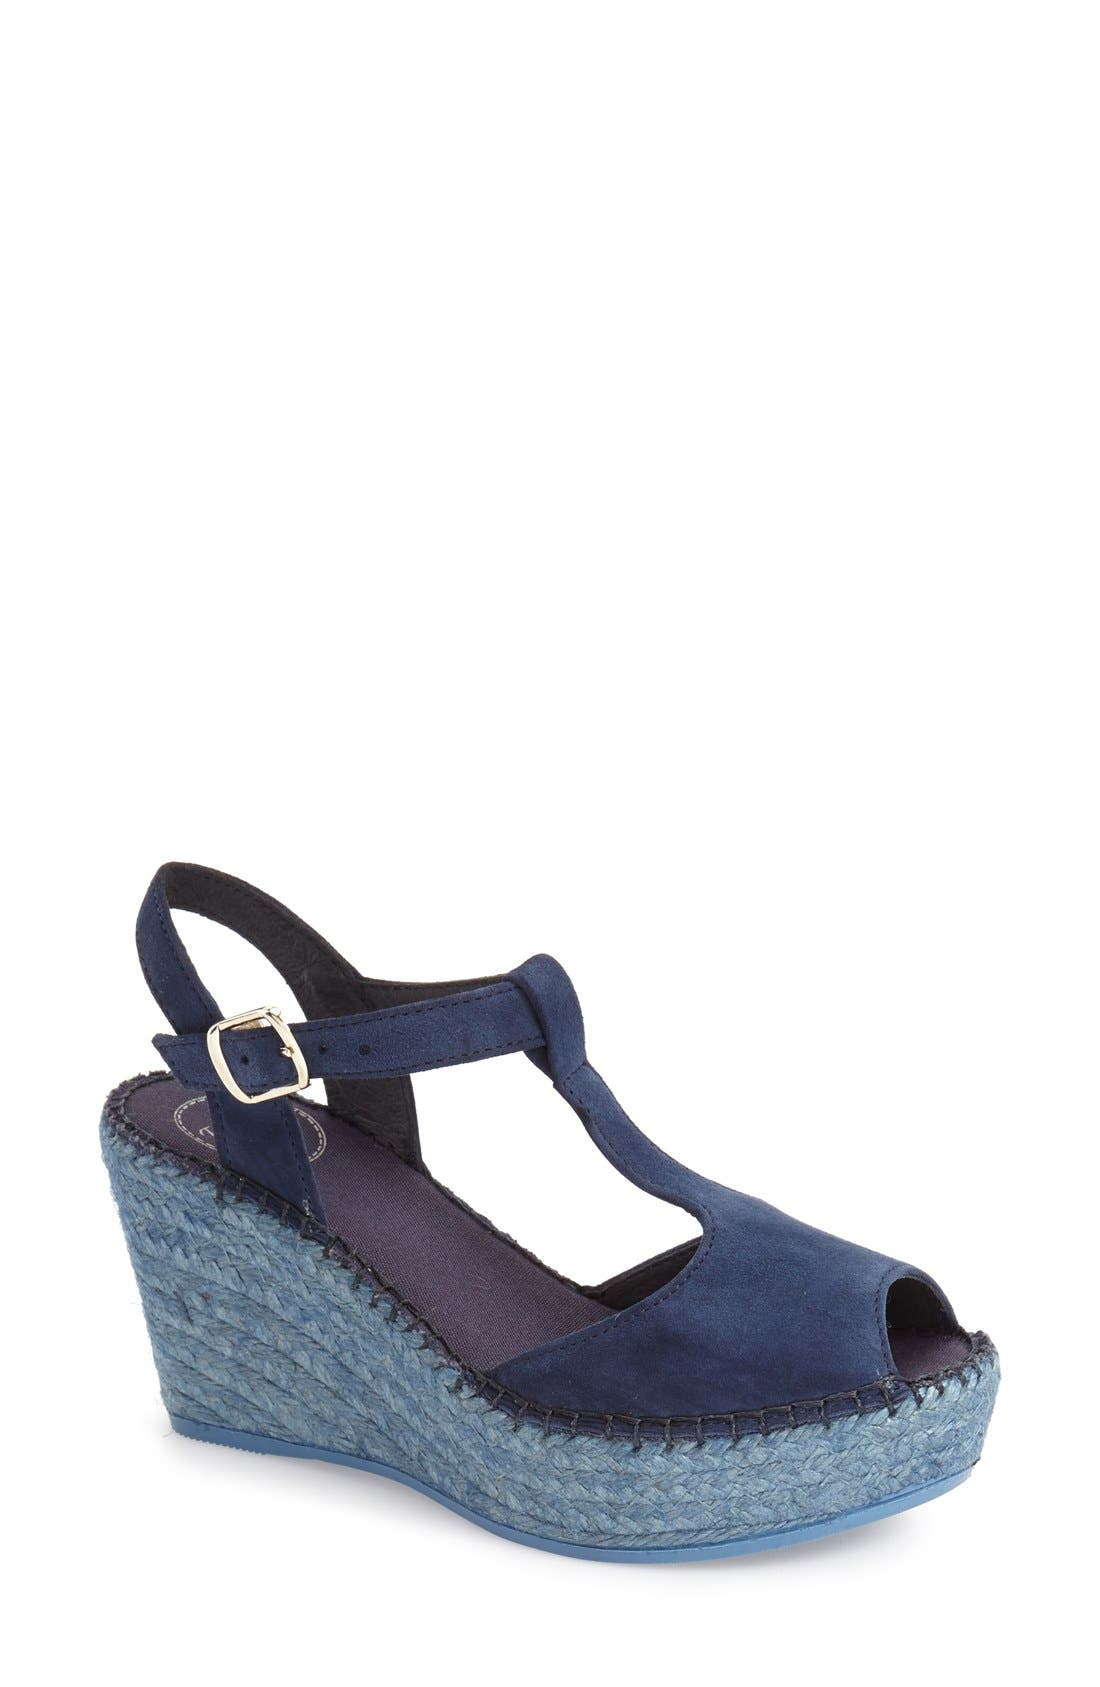 Alternate Image 1 Selected - Toni Pons 'Lidia' T-Strap Espadrille Wedge (Women)